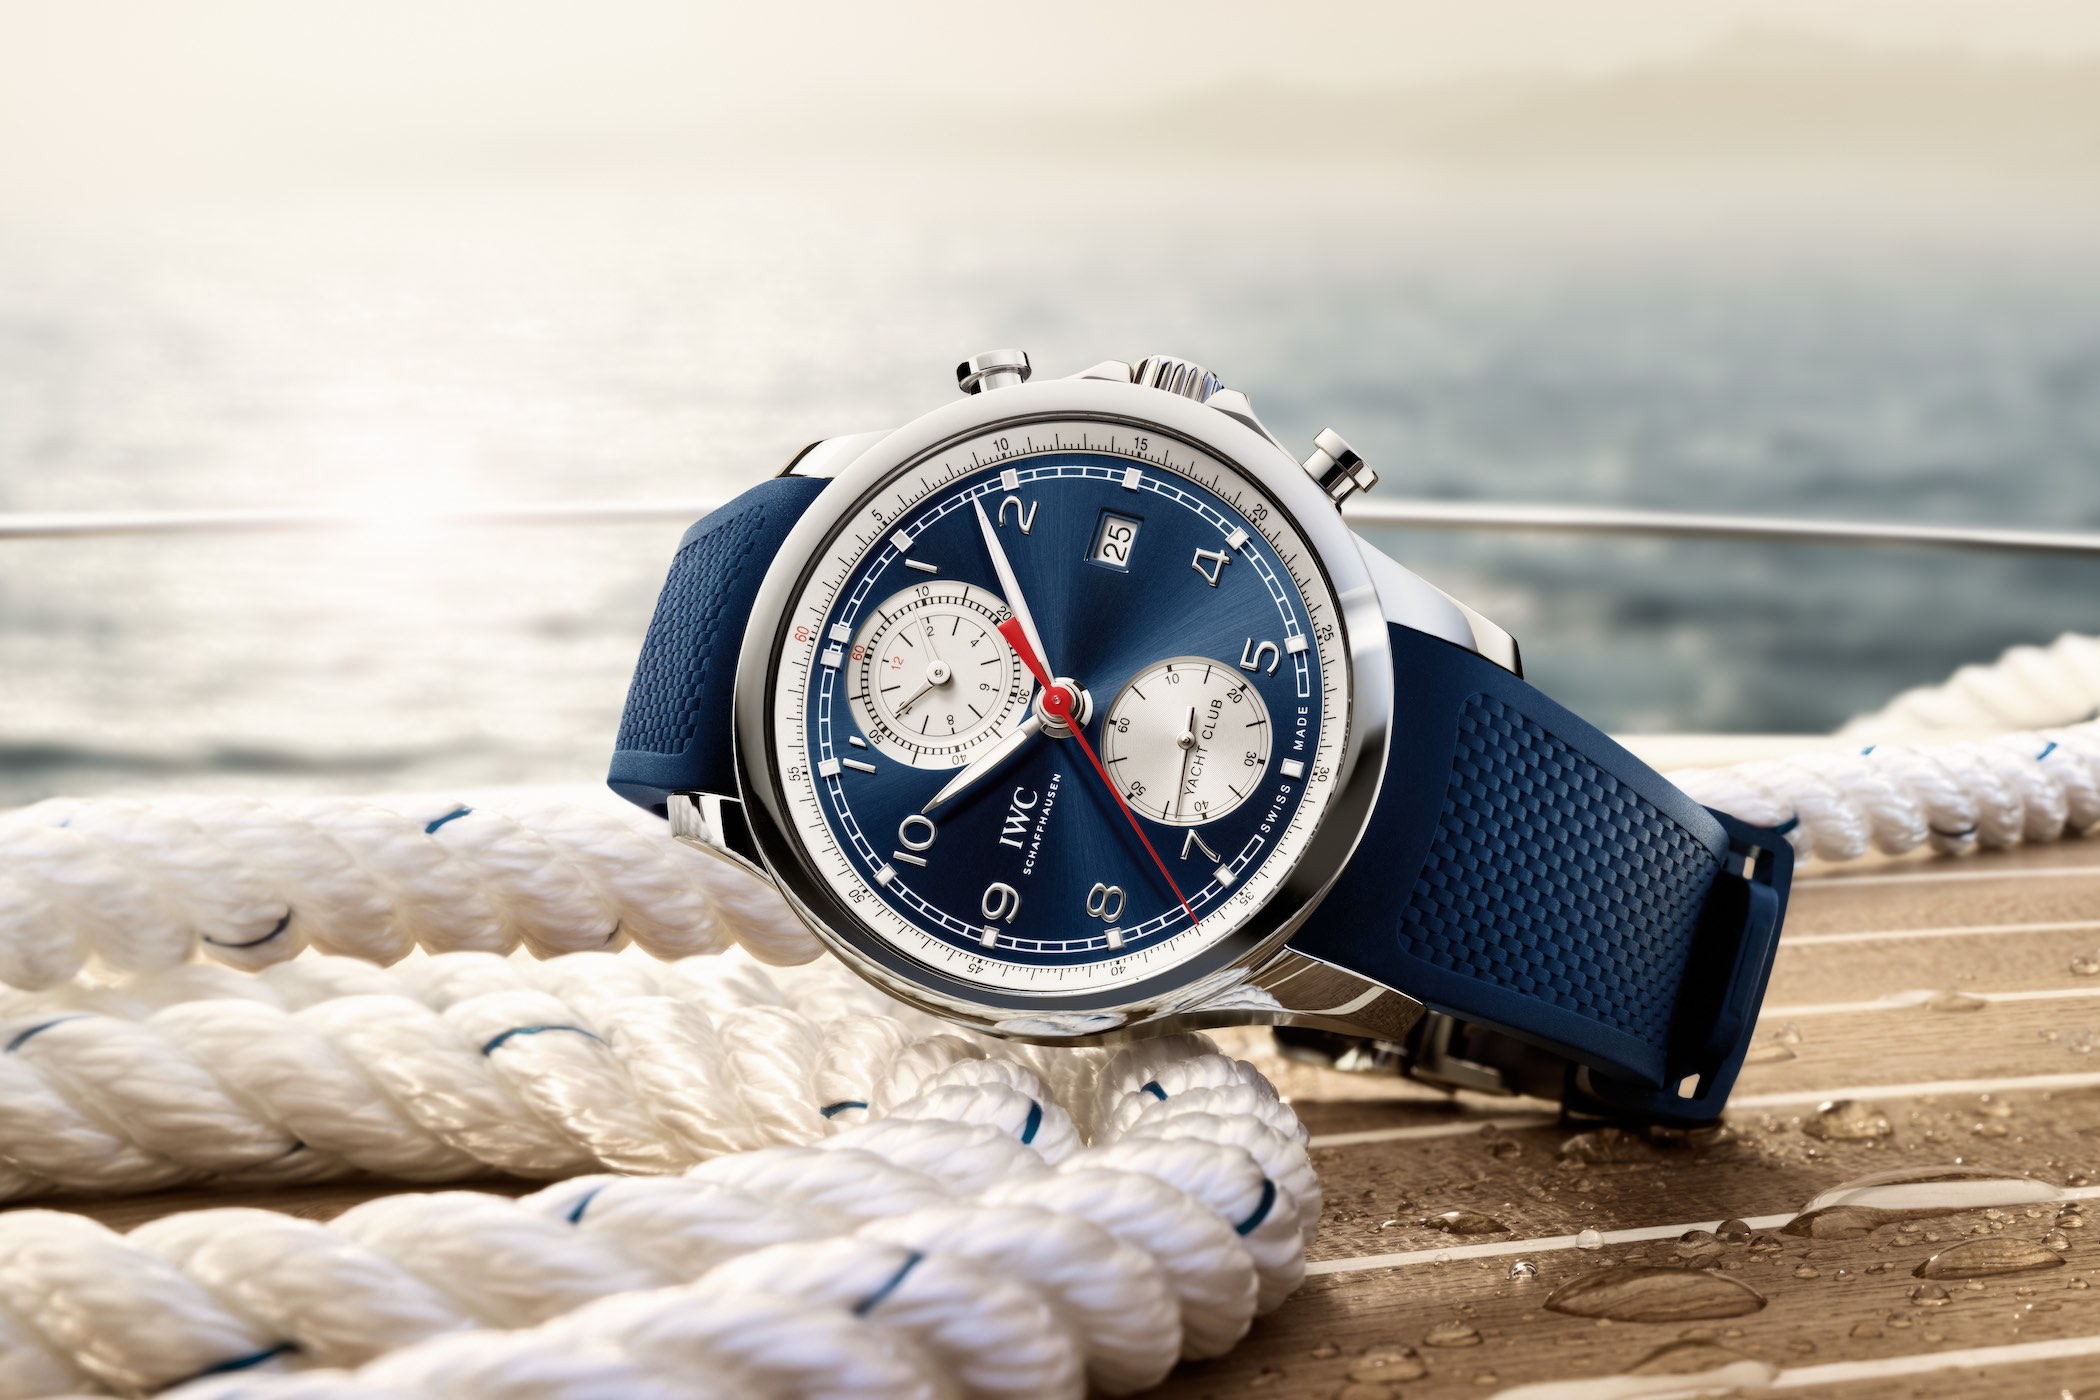 iwc debuts the portugieser yacht club chronograph summer. Black Bedroom Furniture Sets. Home Design Ideas